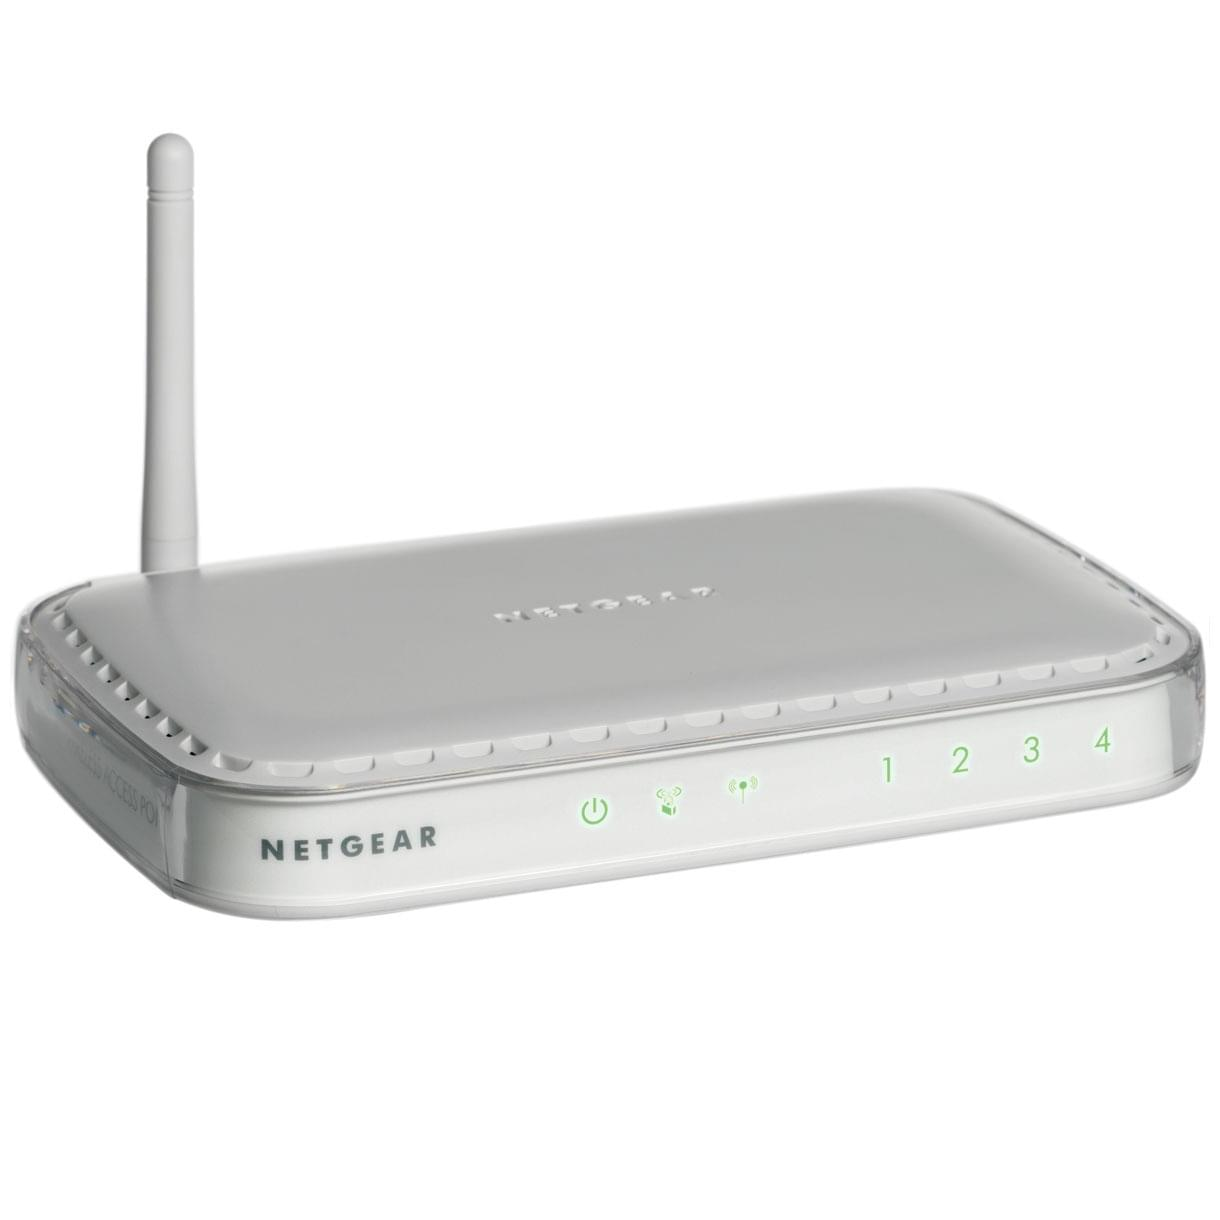 Netgear WN604 Wireless-N 150 Access Point (WN604-100PES) - Achat / Vente Réseau Point d'accès Wifi sur Cybertek.fr - 0